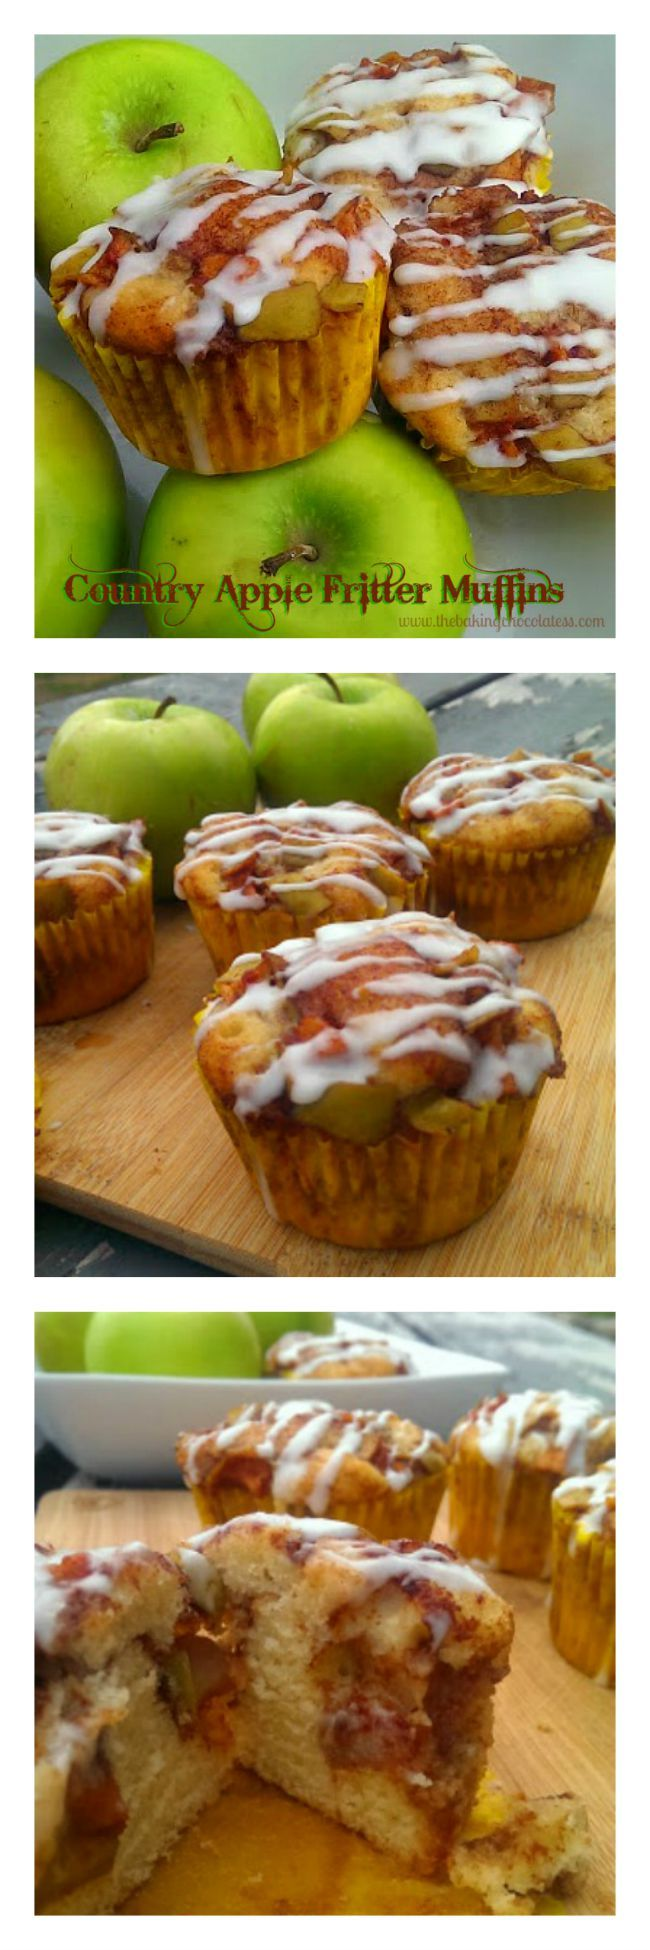 Joanne made this as a loaf & baked for 50-60 minutes. Country Apple Fritter Muffins